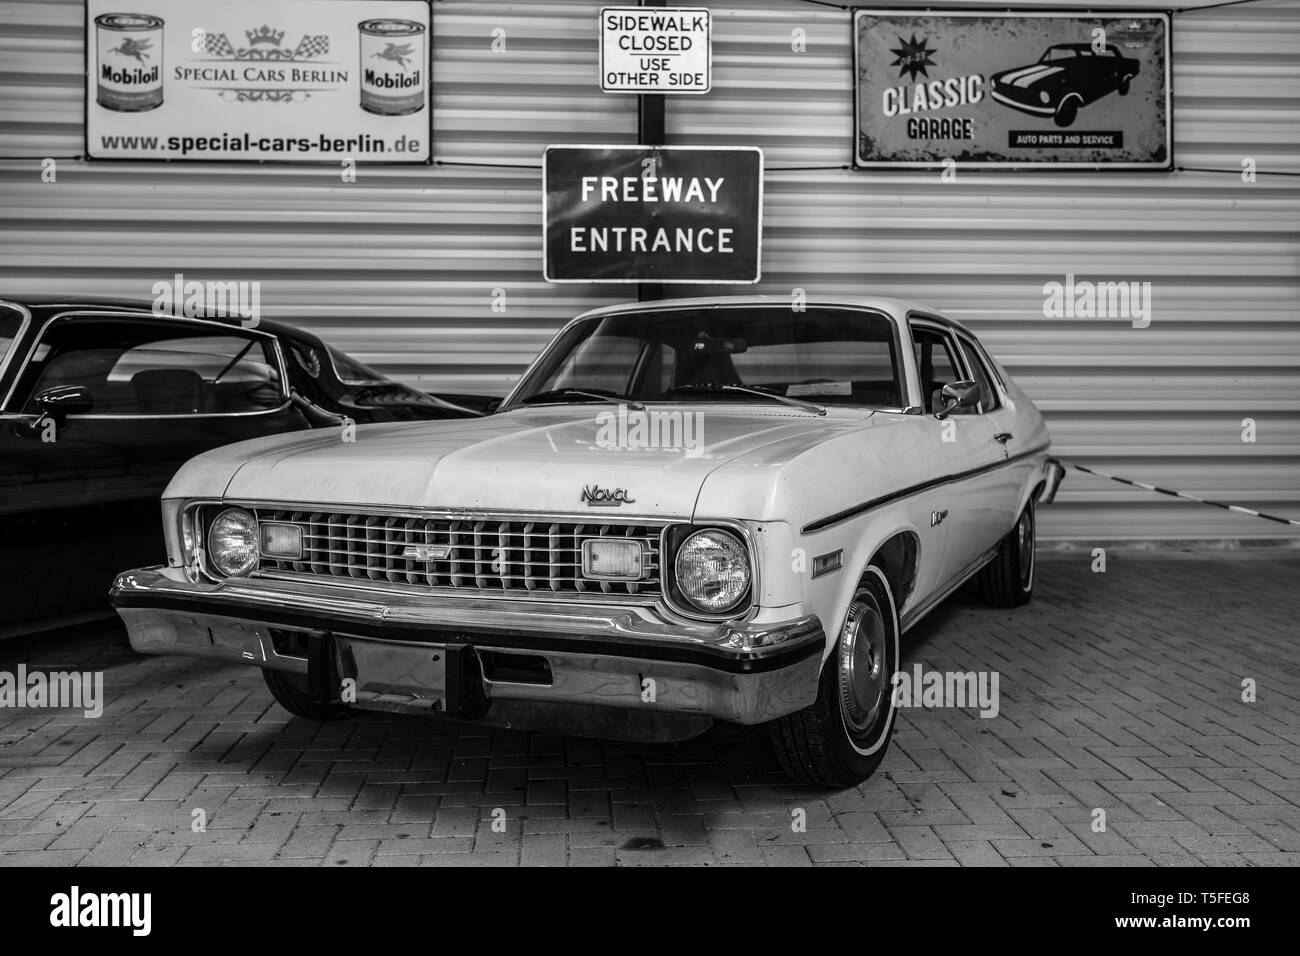 BERLIN - MAY 05, 2018: Compact car Chevrolet Nova, 1974